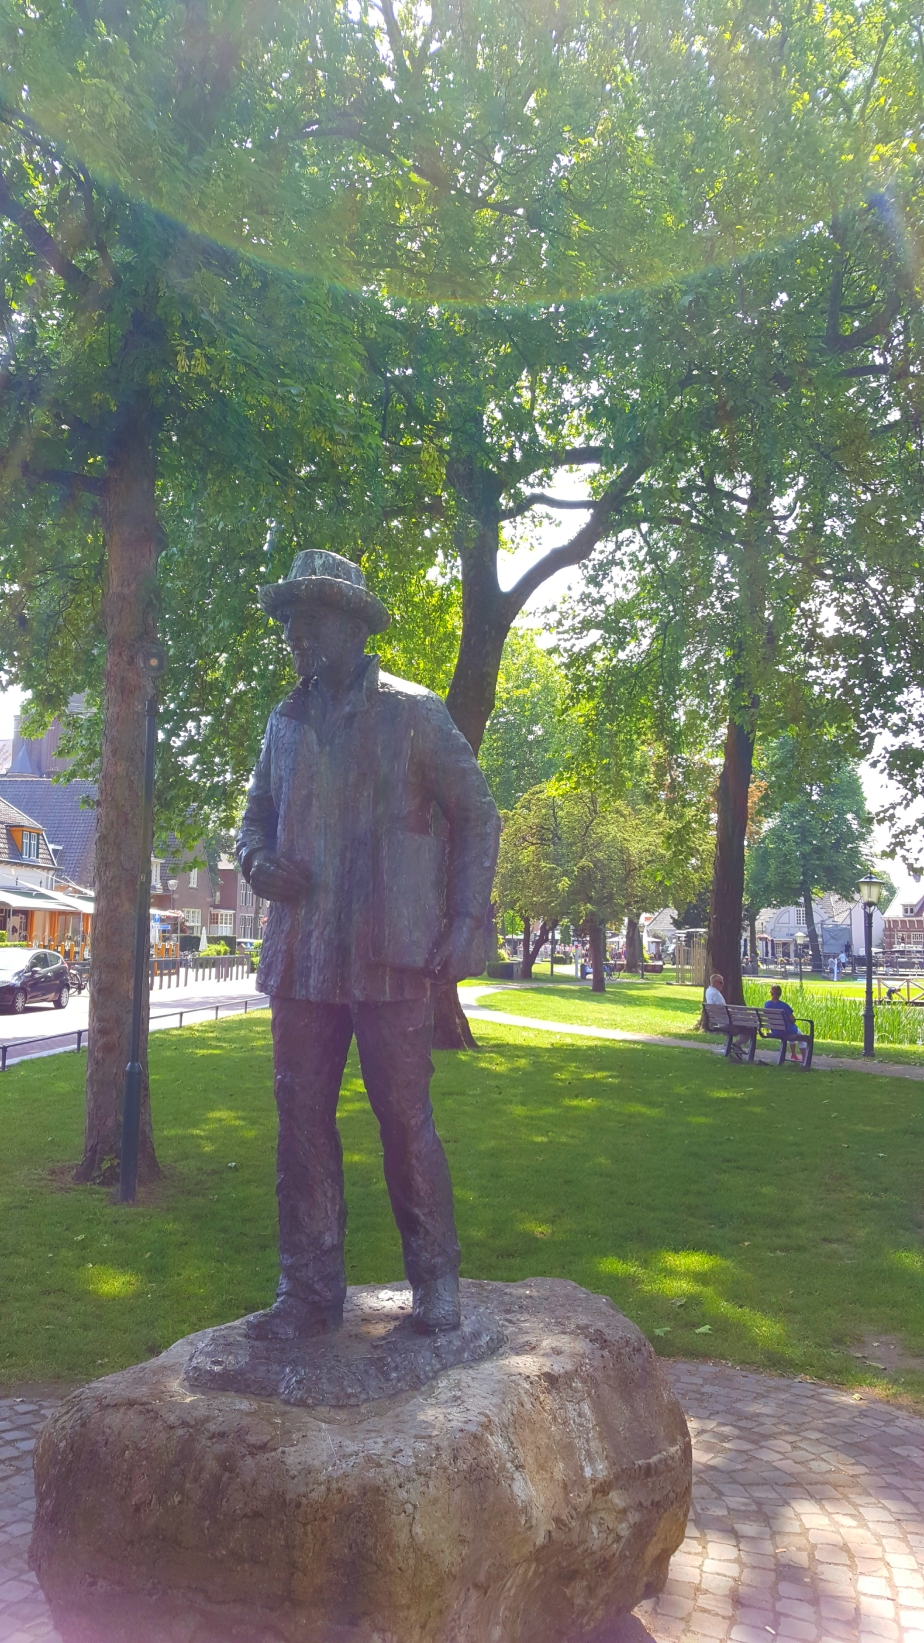 Eindhoven & Nuenen, the Netherlands: Discovering the town once home to Vincent van Gogh